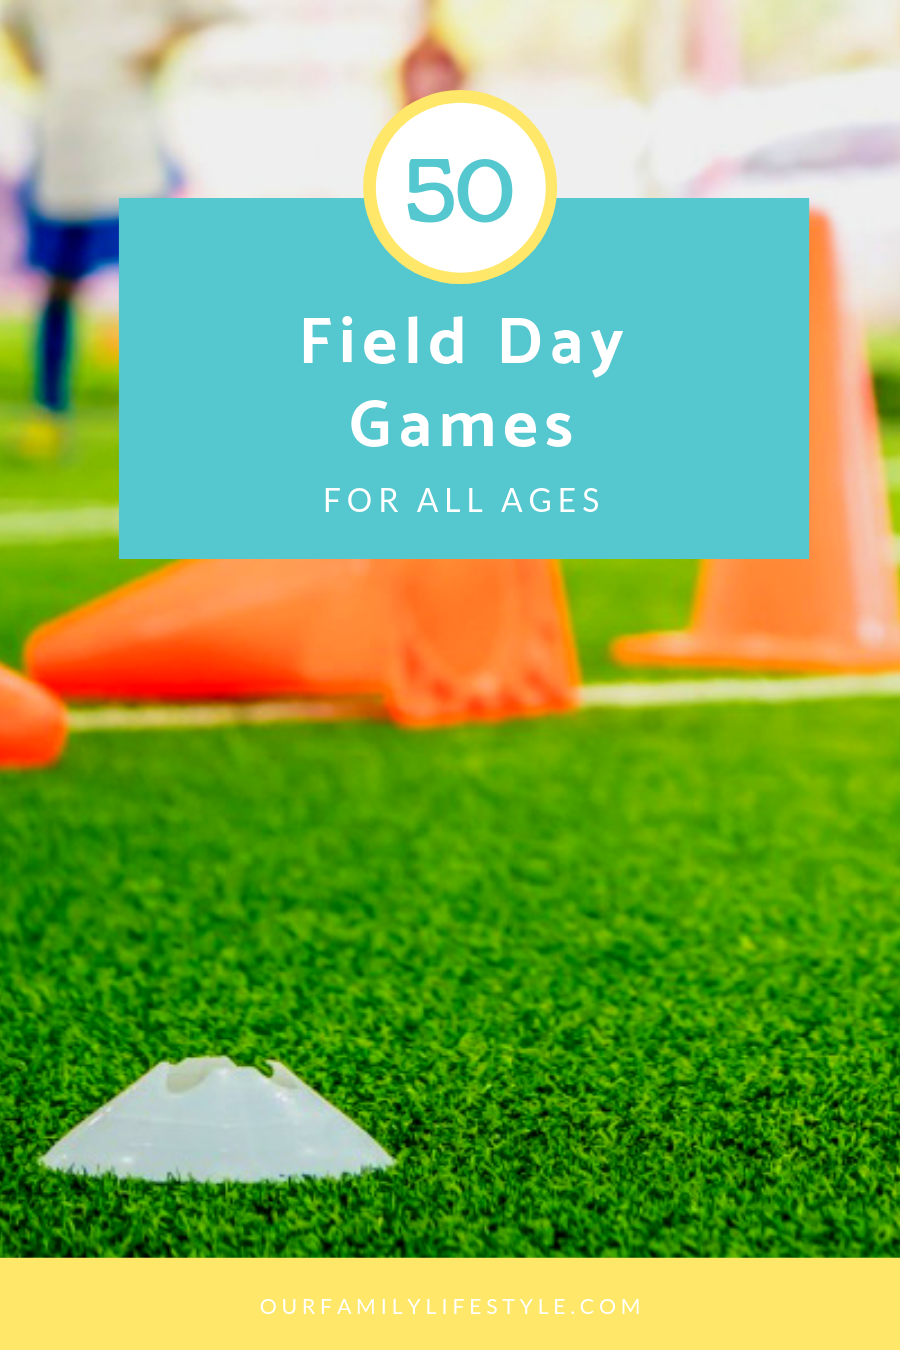 50+ Epic Field Day Games List for All Ages